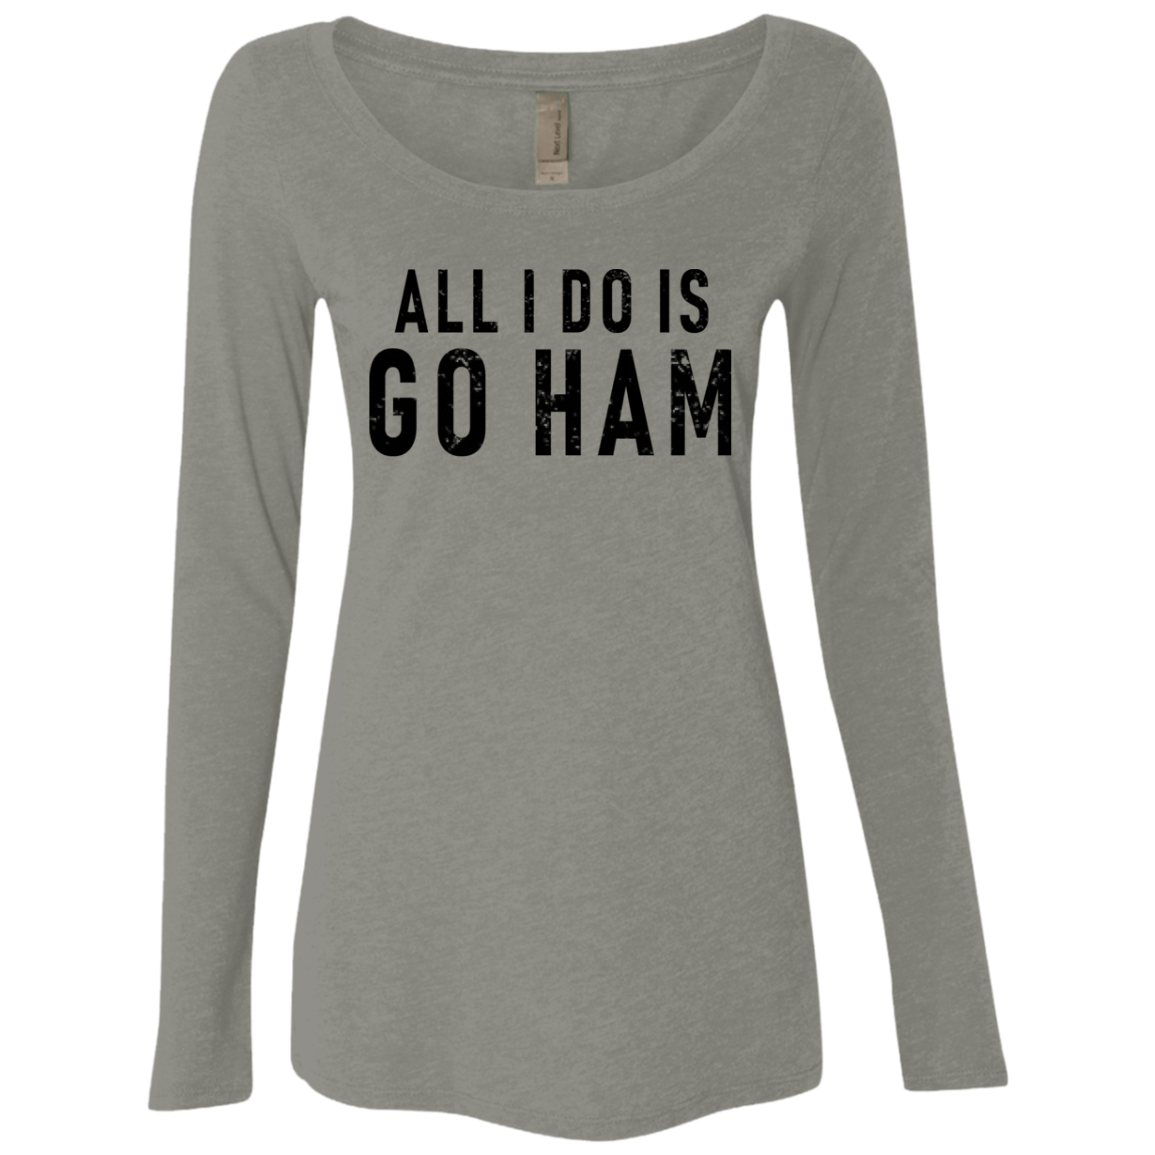 All I Do Is Good Ham Women's Long Sleeve Tee